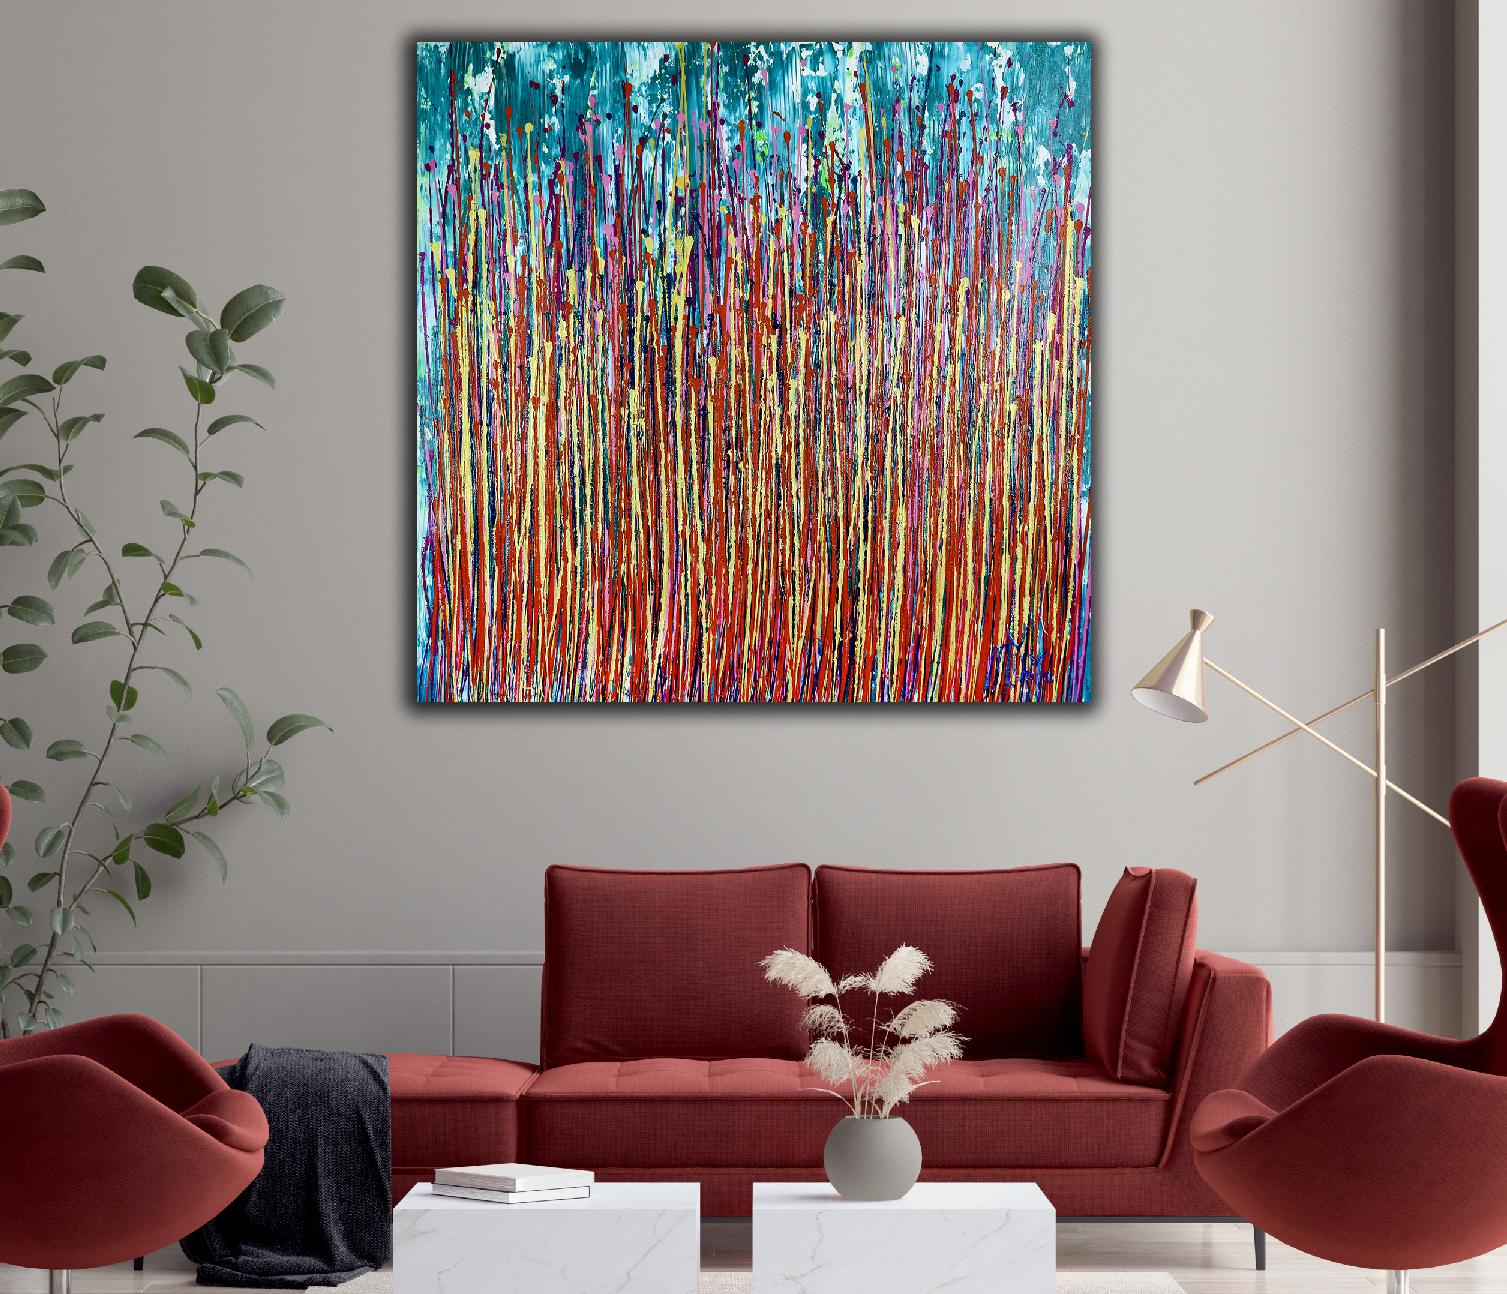 Awakening Garden 5 (2020) Abstract painting by Nestor Toro